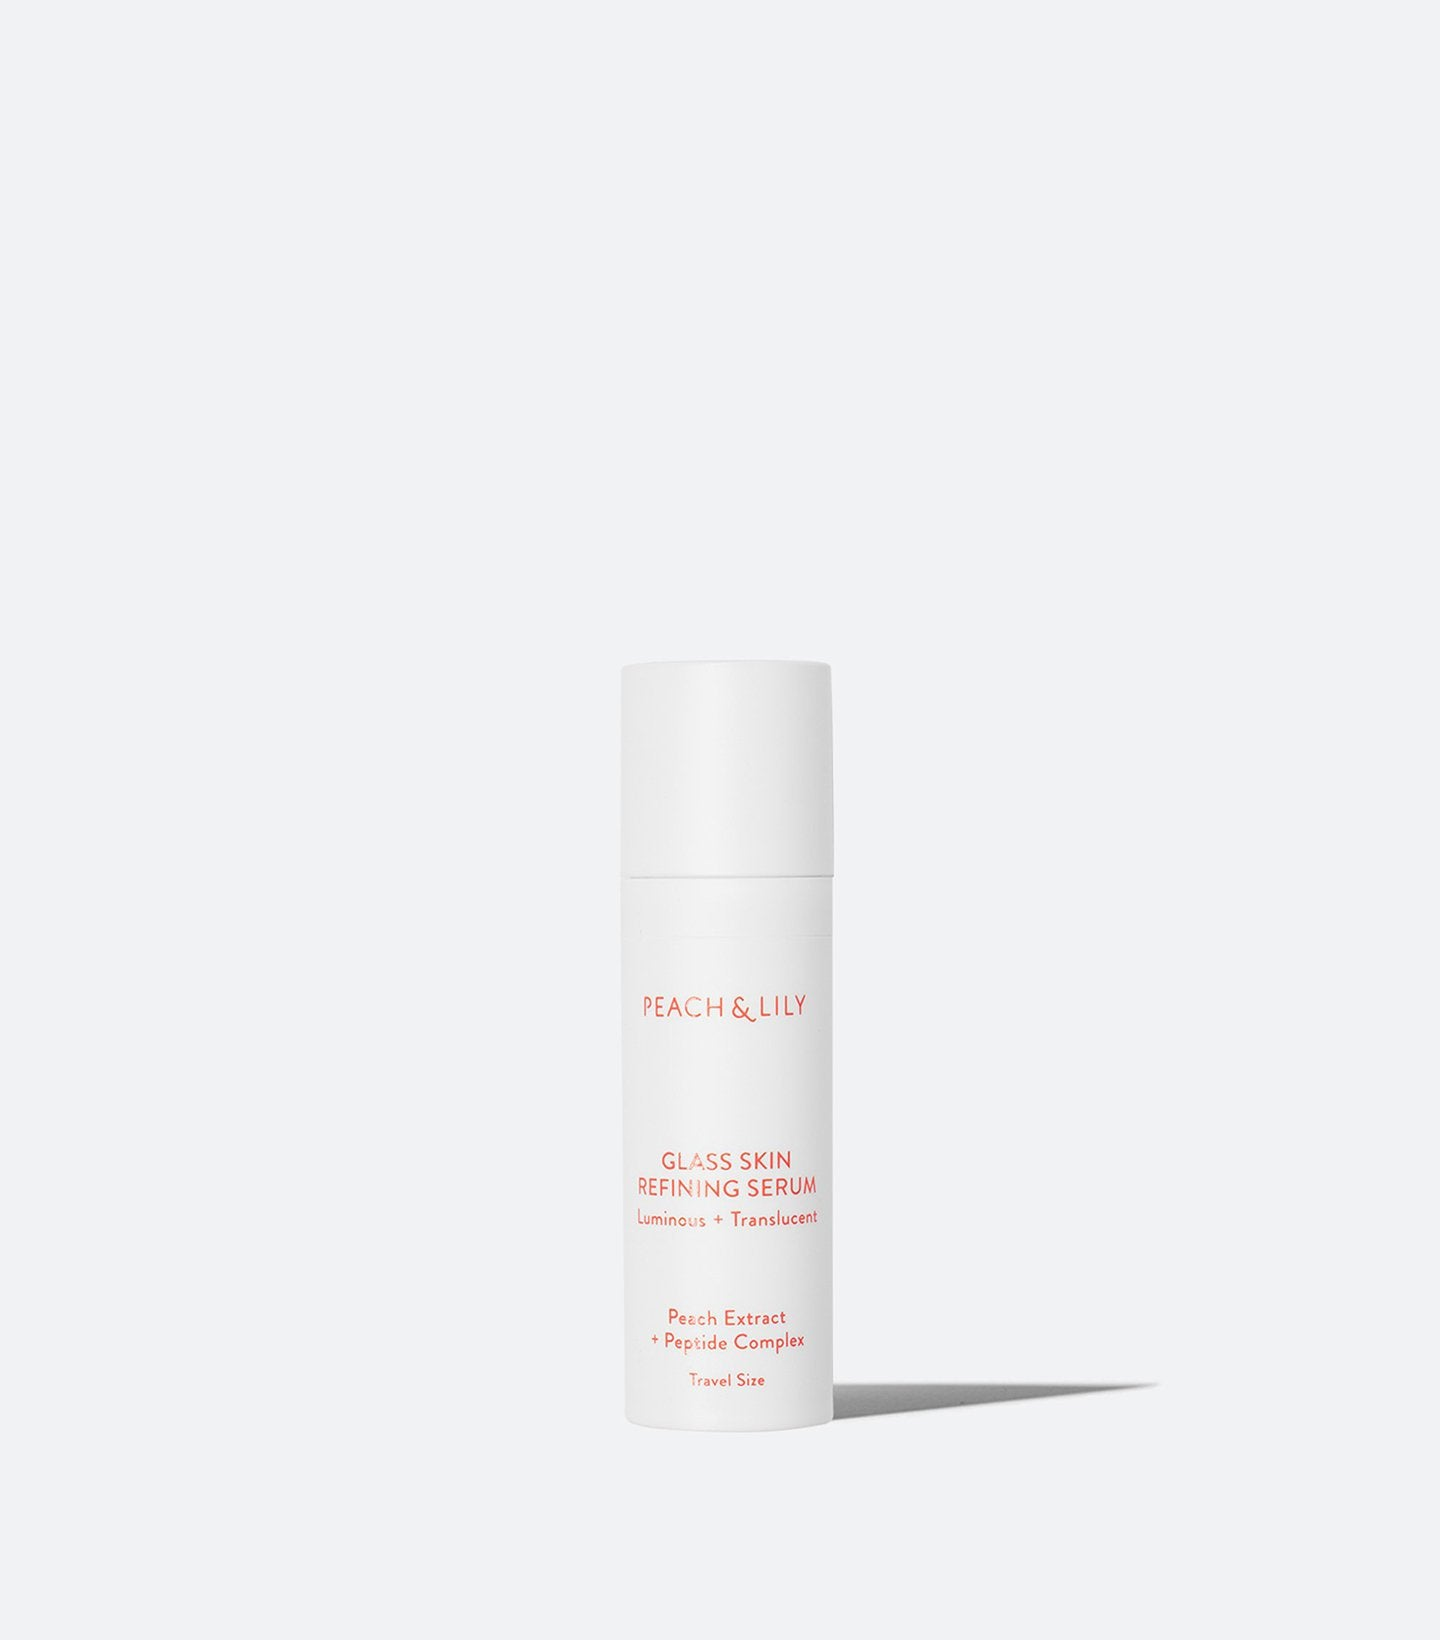 Glass Skin Refining Serum Travel Size